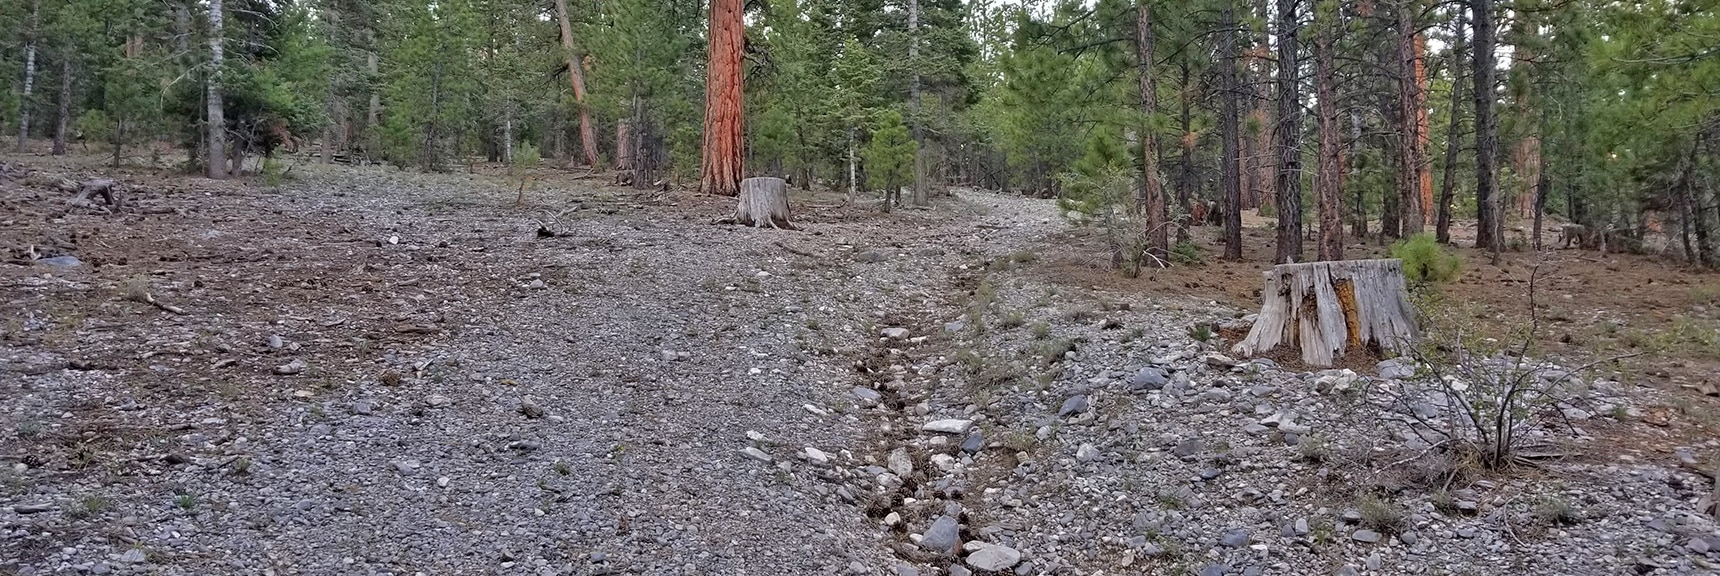 Avalanche Trail Road Becomes 4WD Road Near Approach Wash Base   Mummy Mountain Summit Approach from Lee Canyon   Mt. Charleston Wilderness   Spring Mountains, Nevada